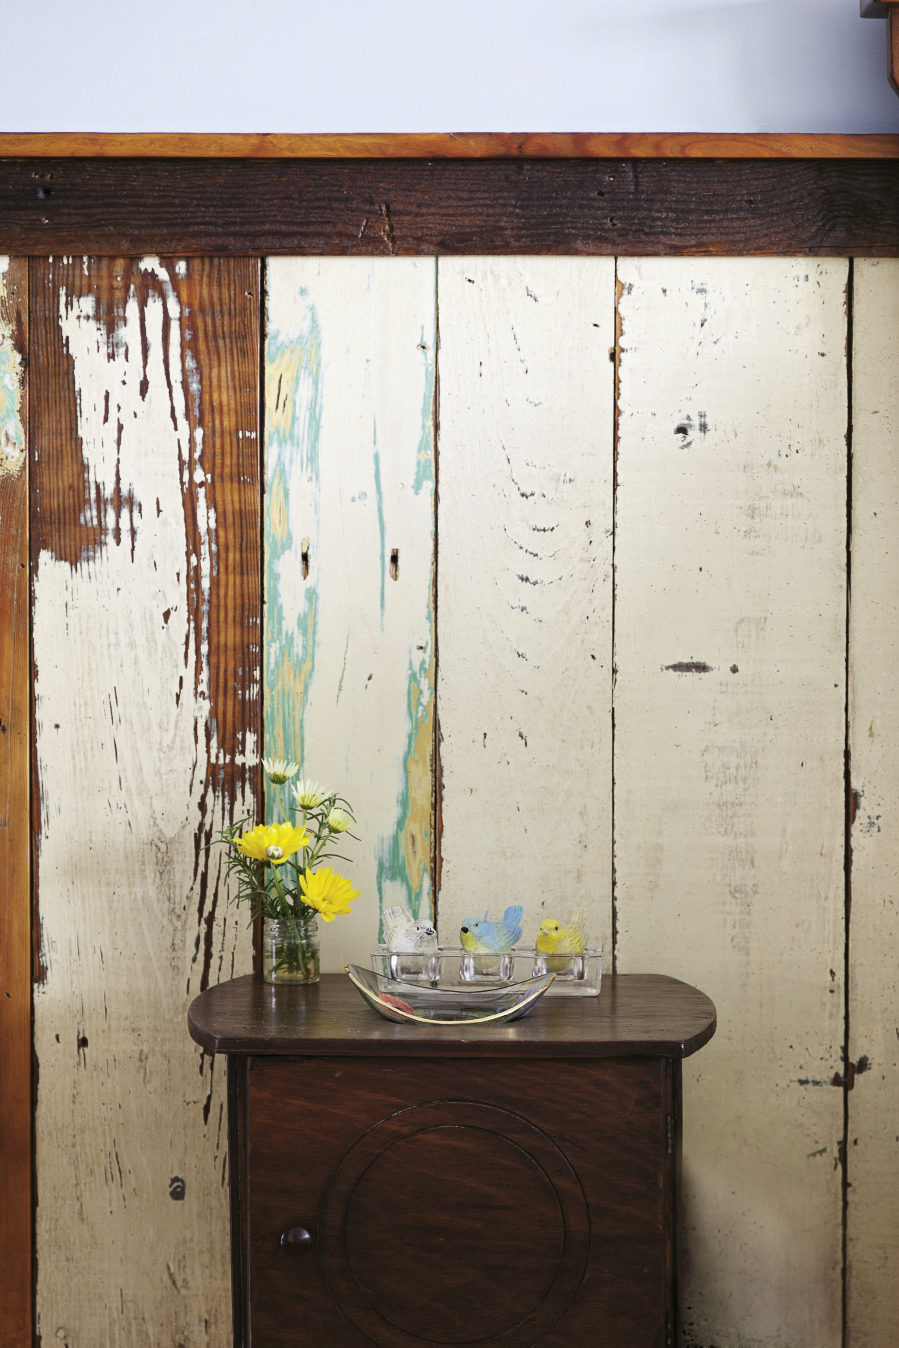 wainscotting salvaged from Greenville was left unstained to maintain its distressed look.